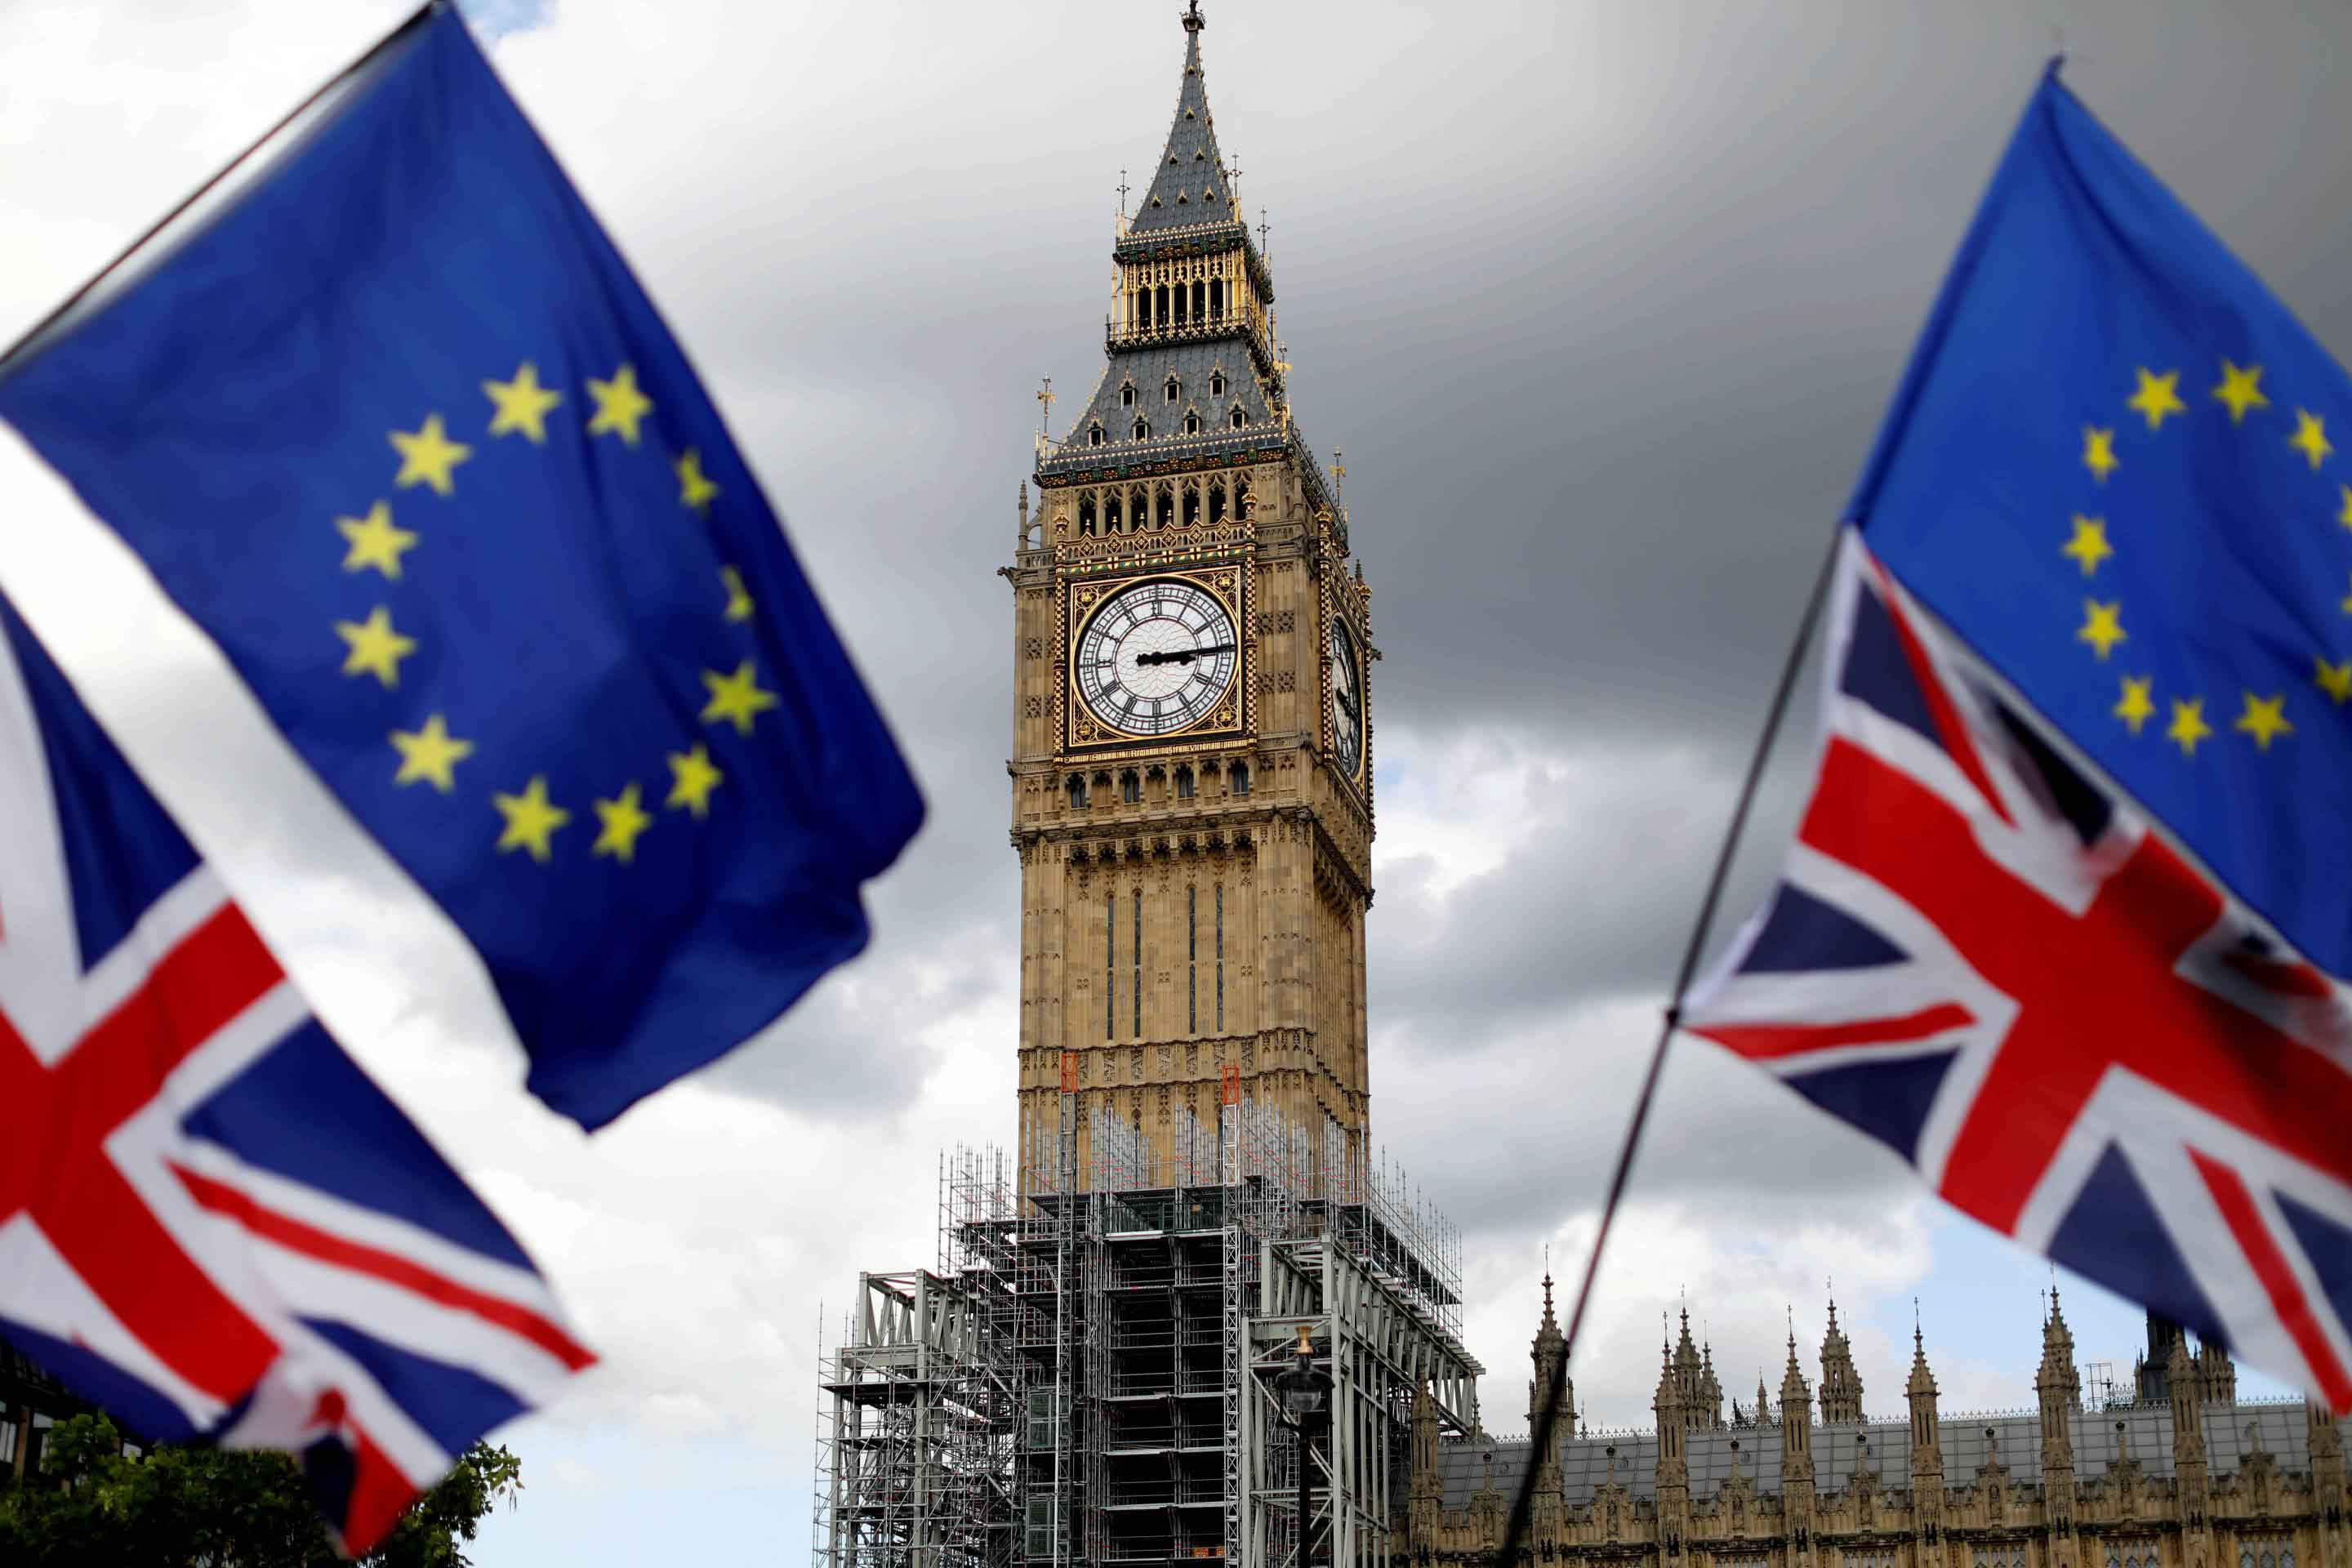 FILE PHOTO: Union Flags and European Union flags fly near the Elizabeth Tower, housing the Big Ben bell, during the anti-Brexit 'People's March for Europe', in Parliament Square in central London